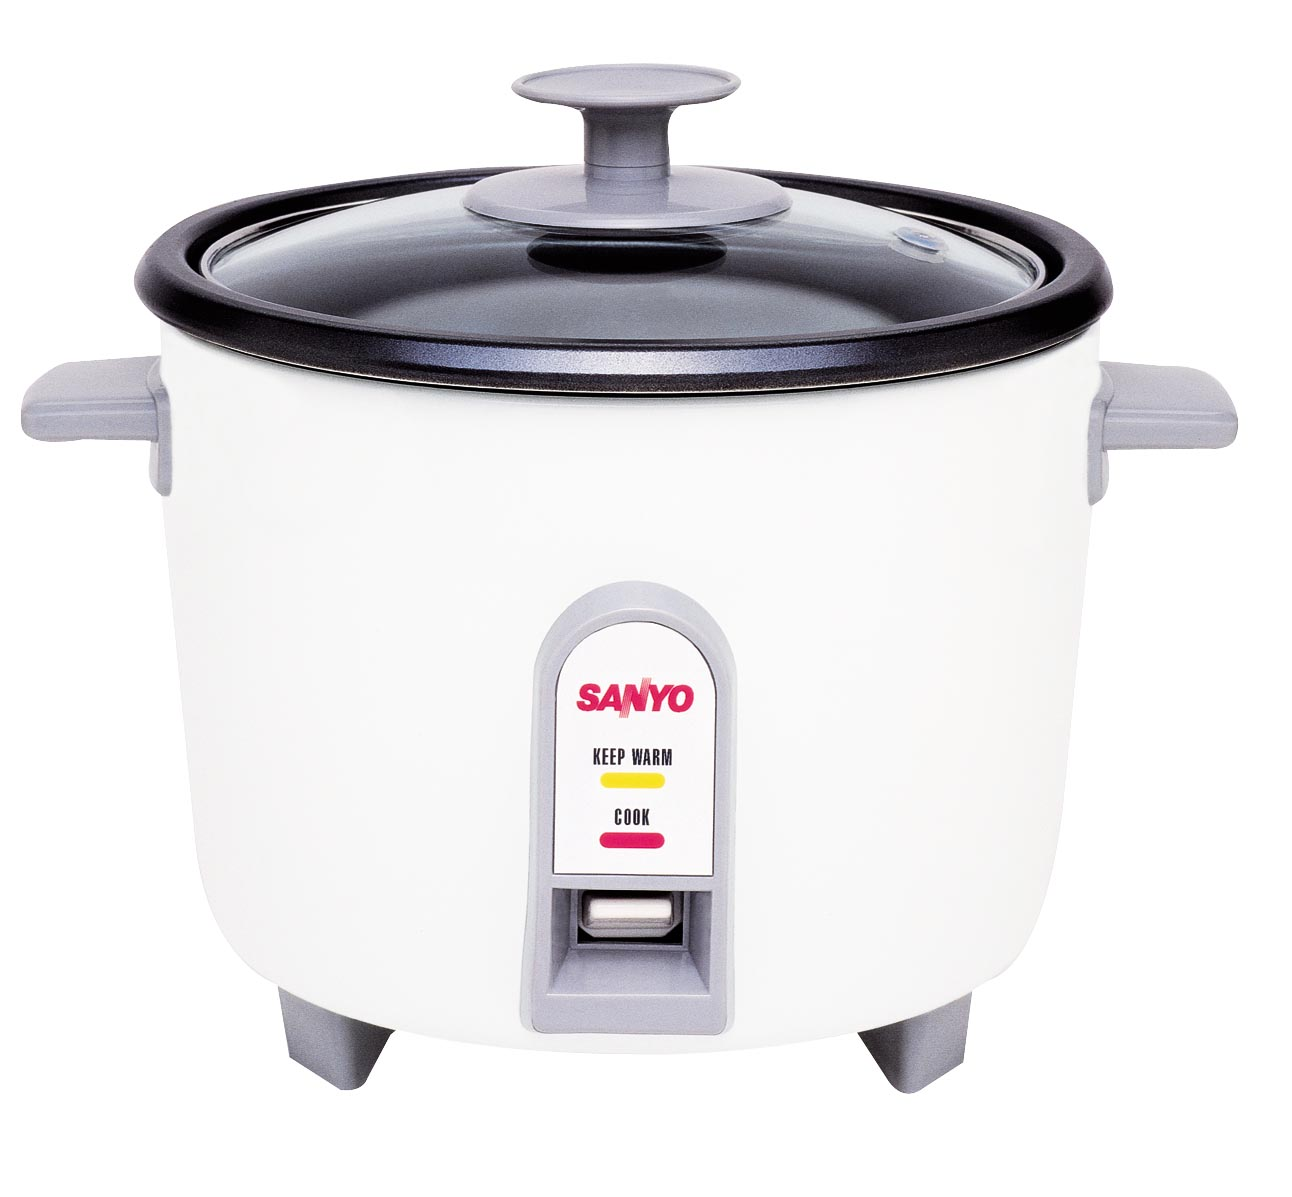 Sanyo ec505 rice cooker 5cup vegetable steamer